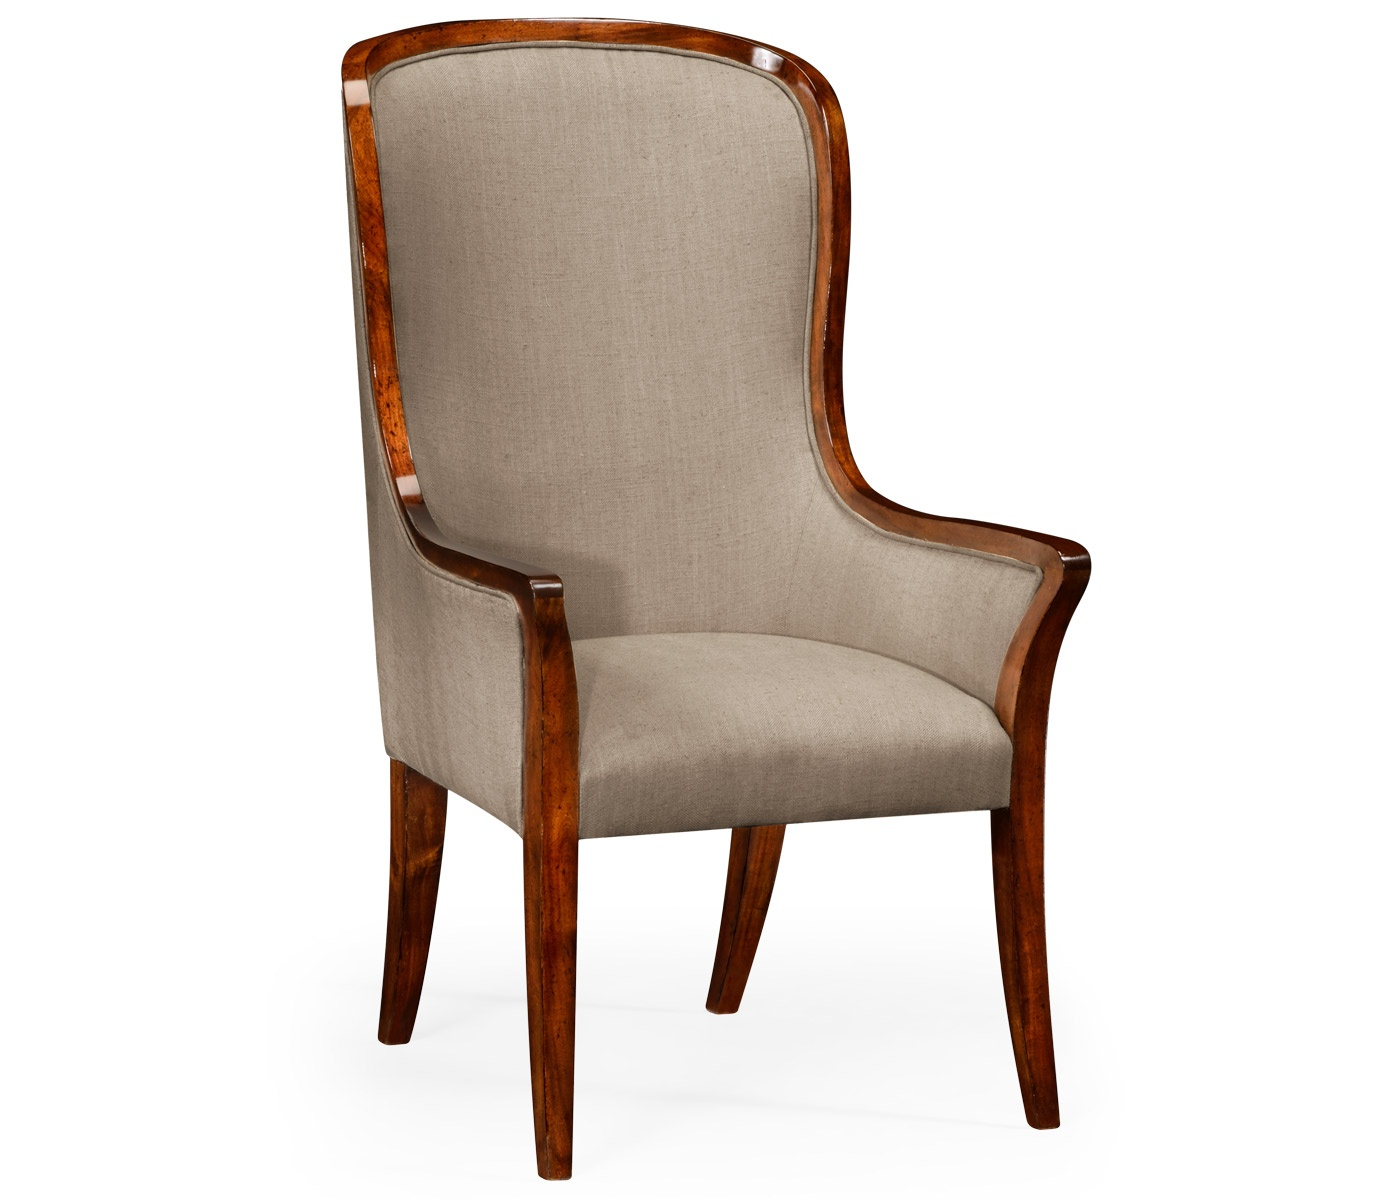 High Dining Room Chairs: High Back Upholstered Dining Armchair